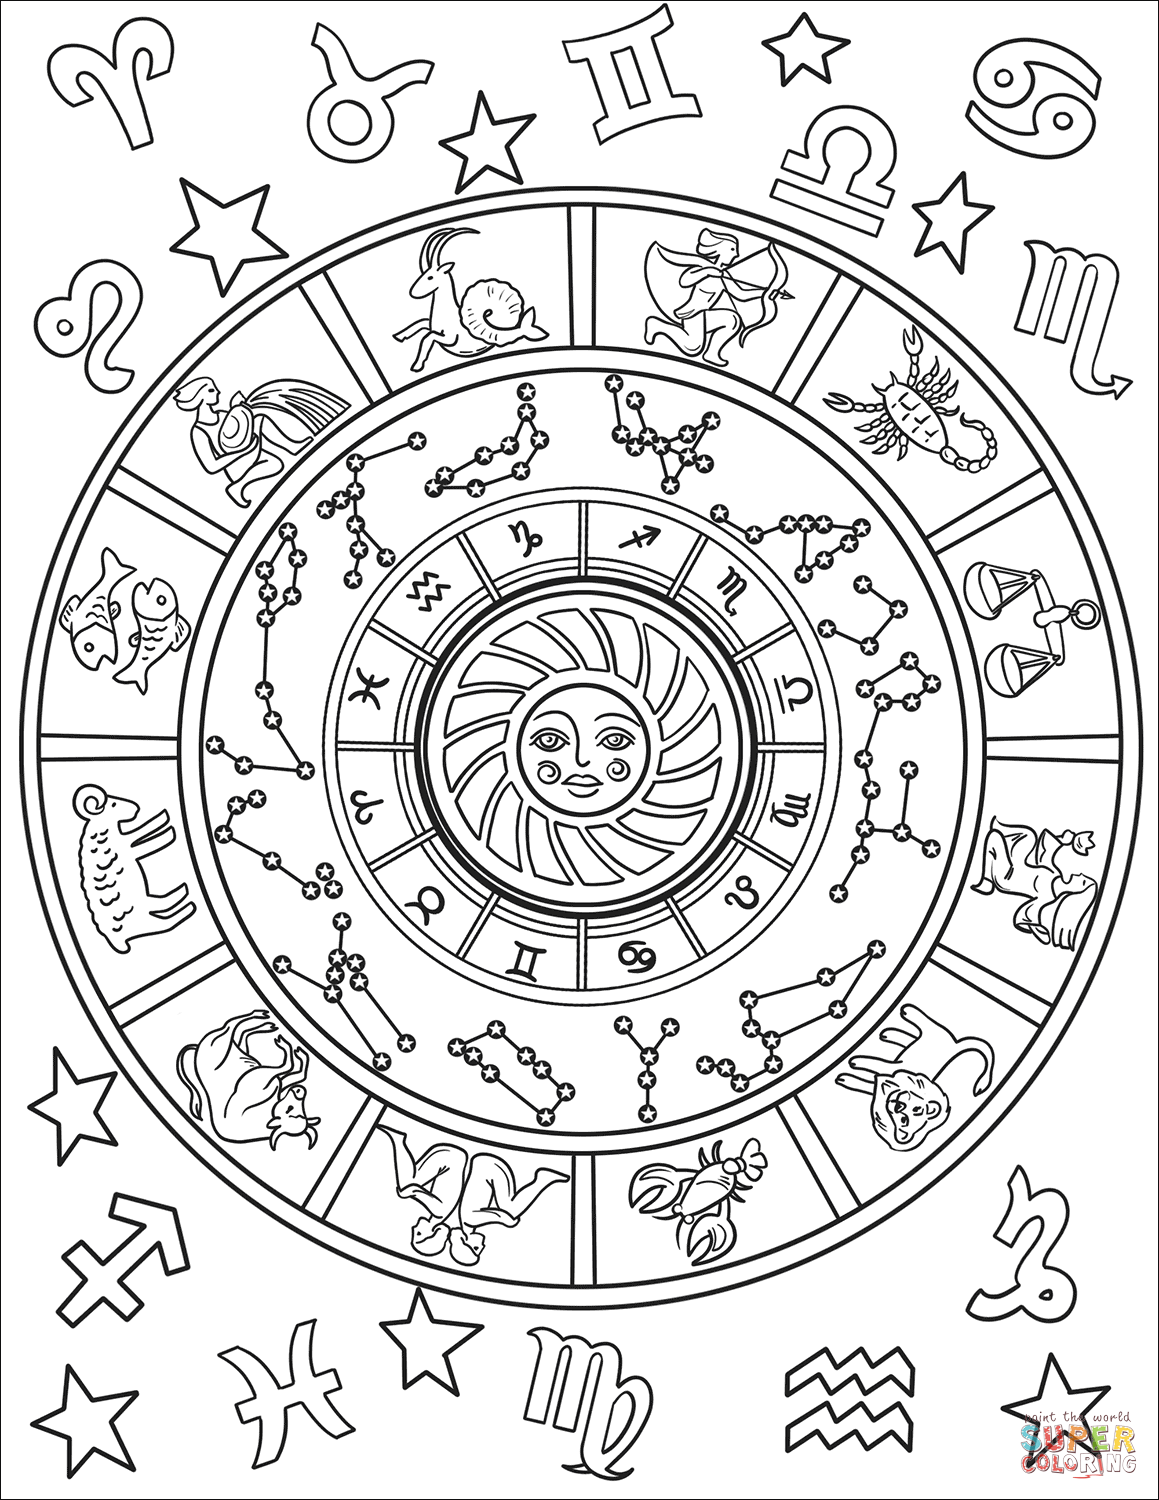 12 Astrological Signs Coloring Page